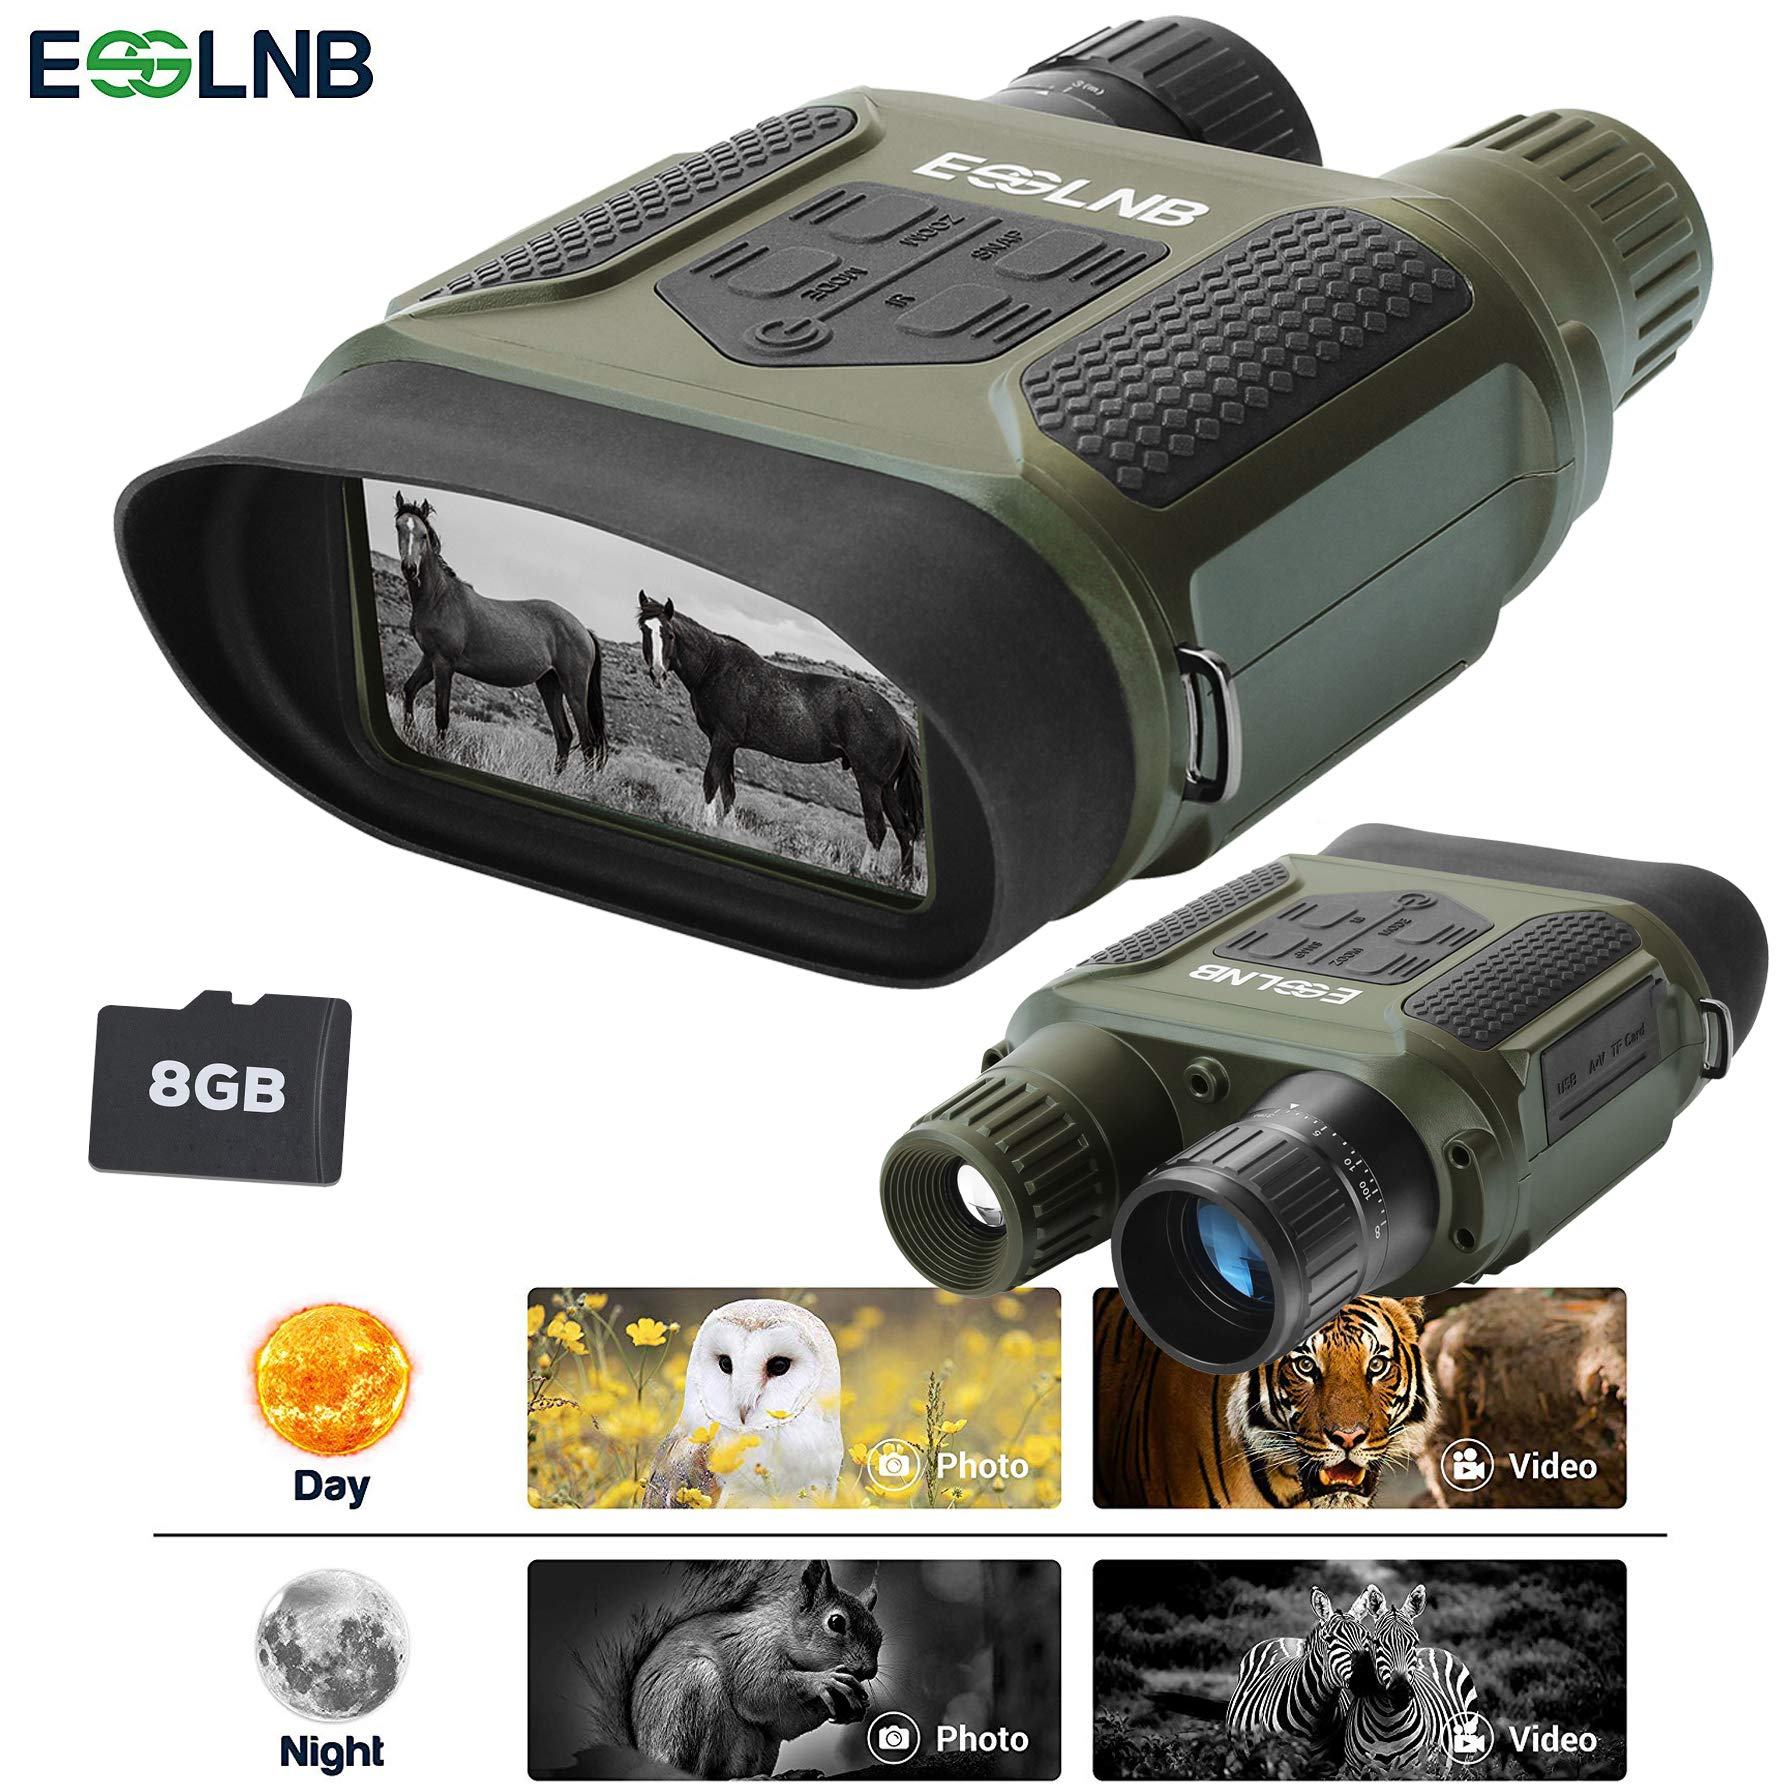 ESSLNB Night Vision Binoculars 1300ft Digital Night Vision Scope 7x31 Infrared Night Vision Hunting Binocular with 2'' TFT LCD and 8GB TF Card Photo Camera Video Recorder Playback Function by ESSLNB